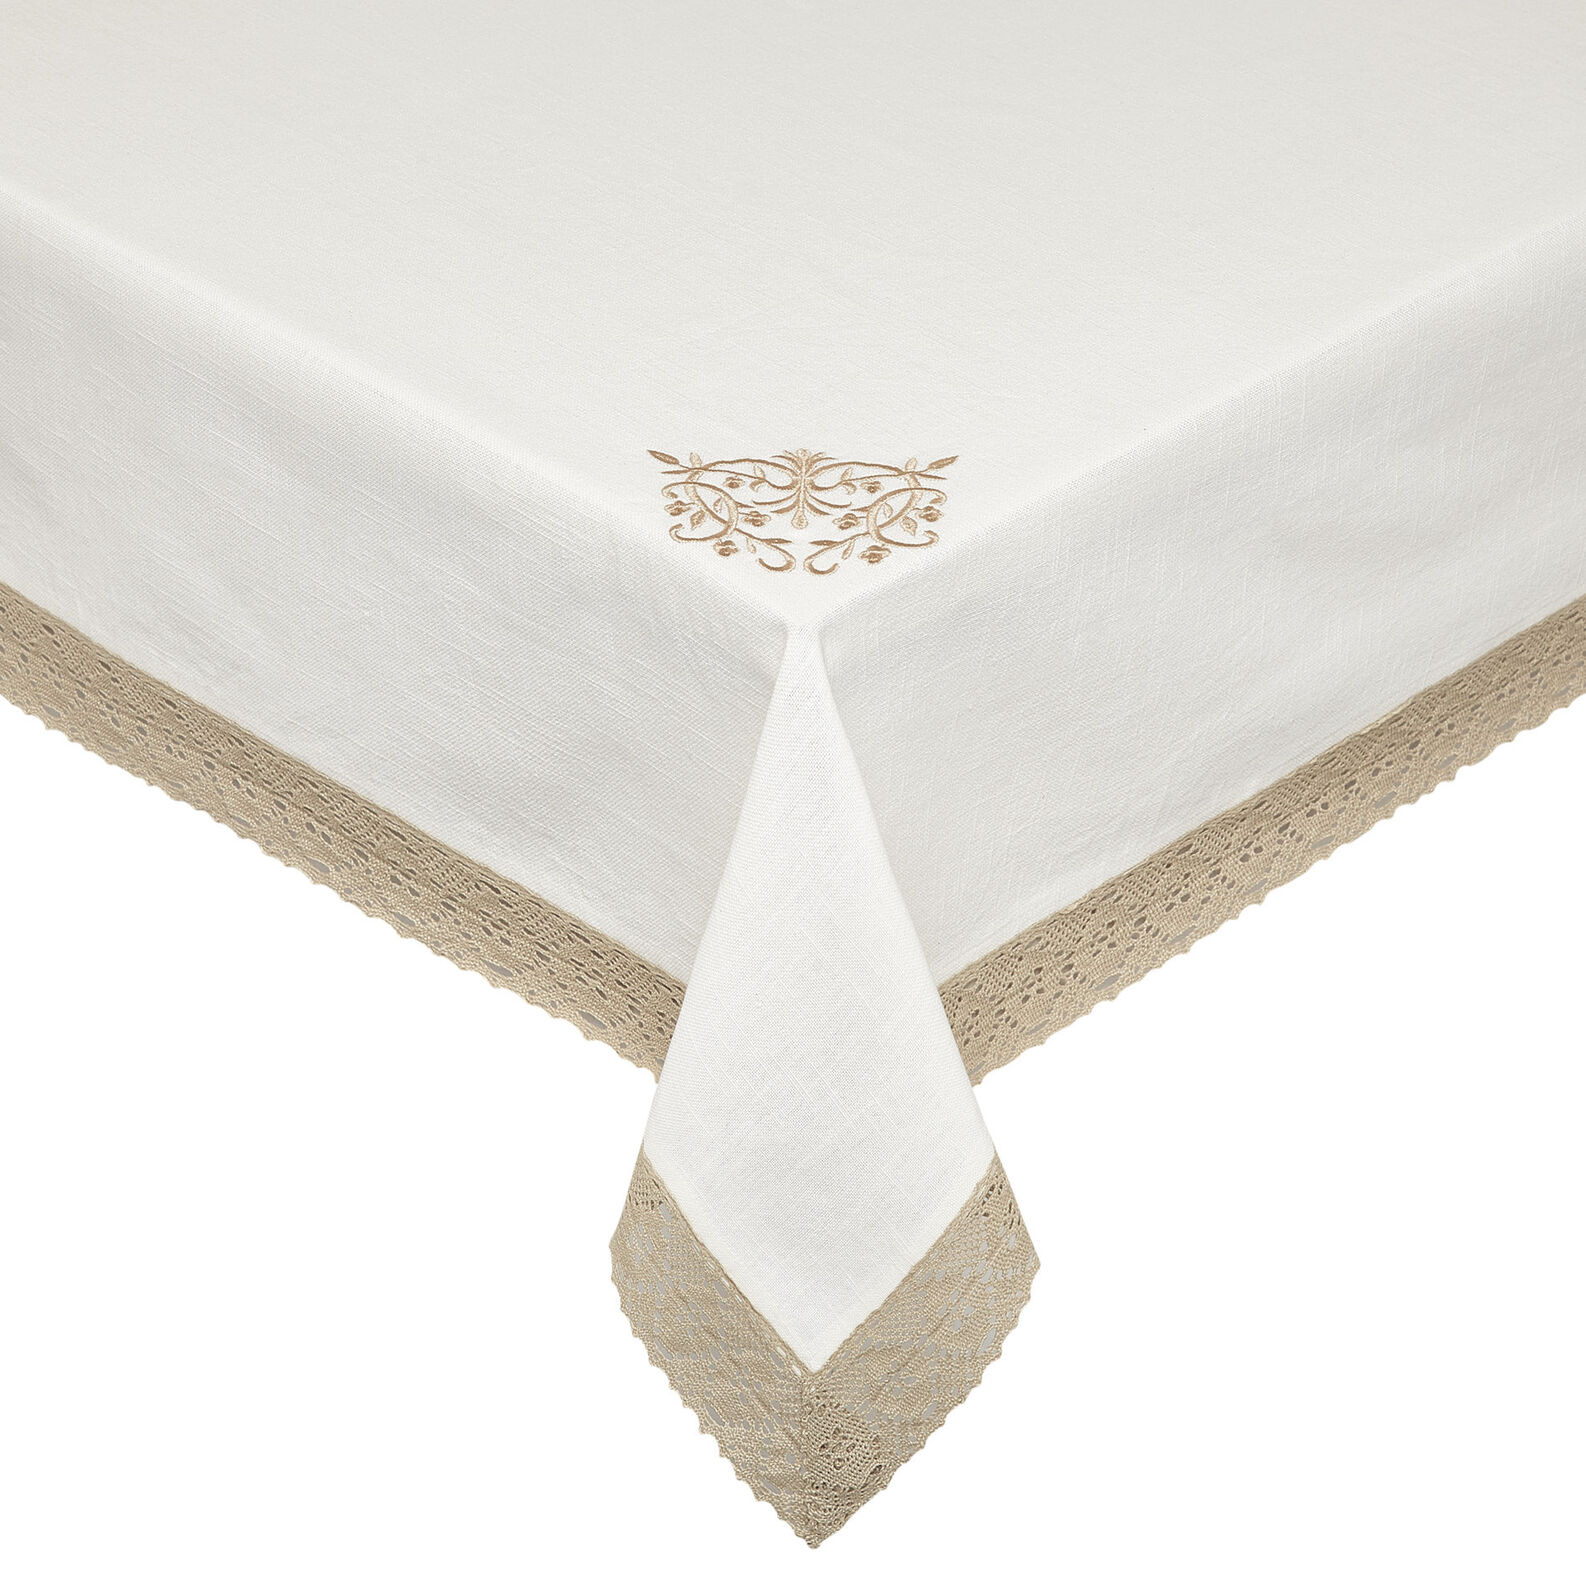 Burano Lace embroidered table cloth